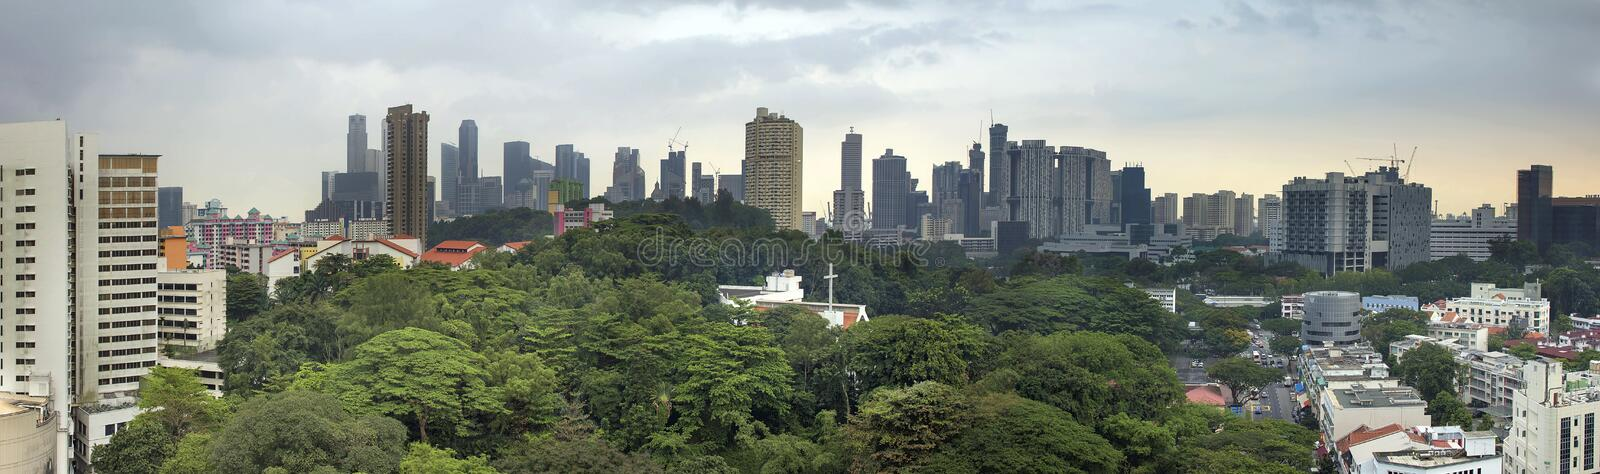 Download Singapore City Skyline With Green Landscape Stock Photo - Image of forest, greenery: 30856834